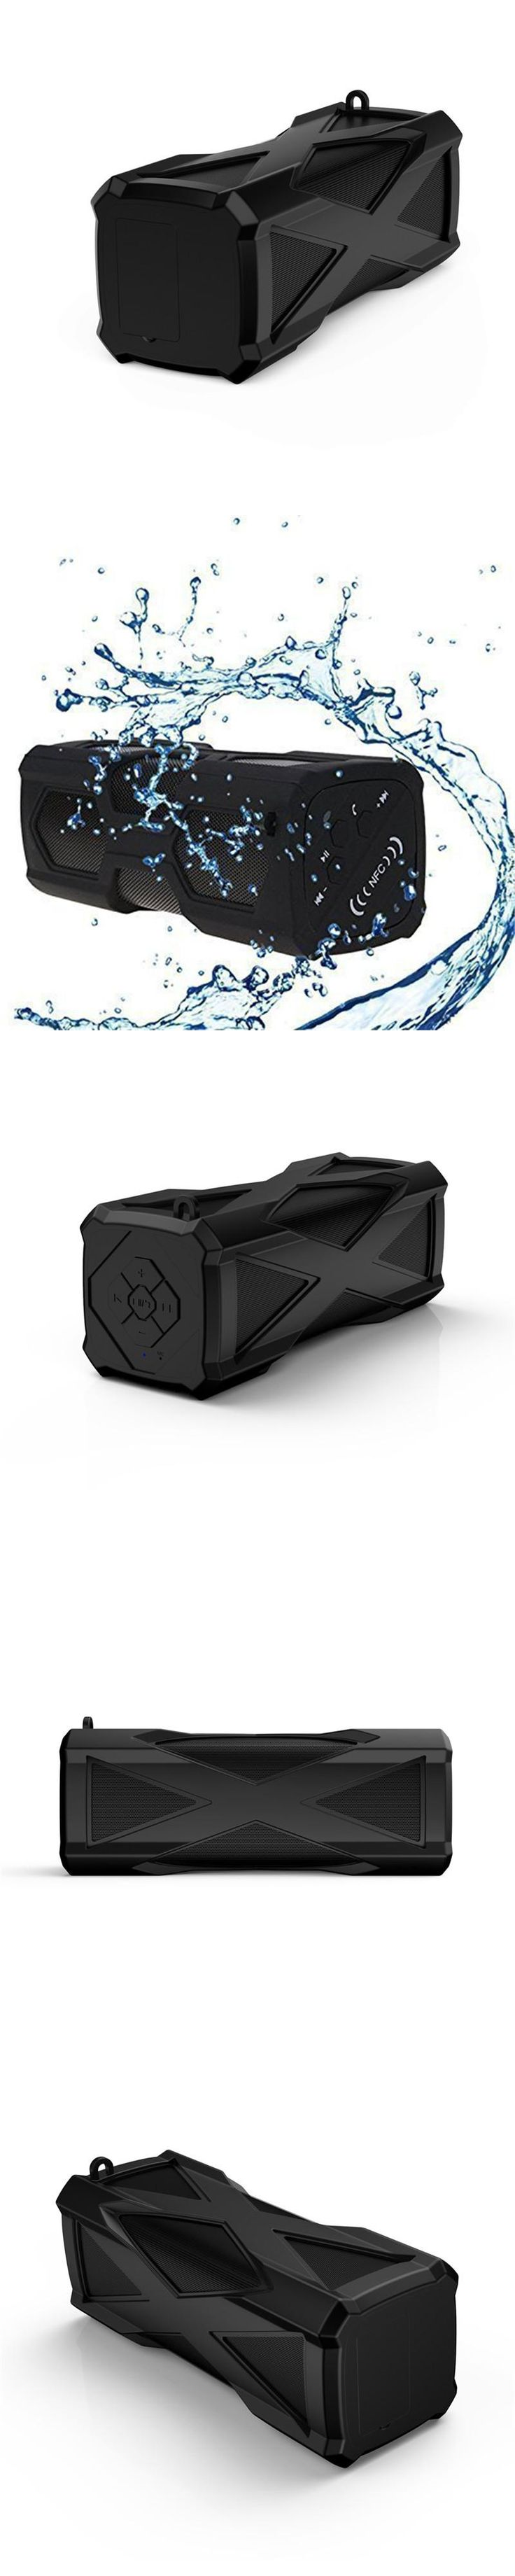 Avanshare wireless outdoor Waterproof Sport bluetooth Stereo speaker with Super Bass support MIC DC out 4000mah power bank